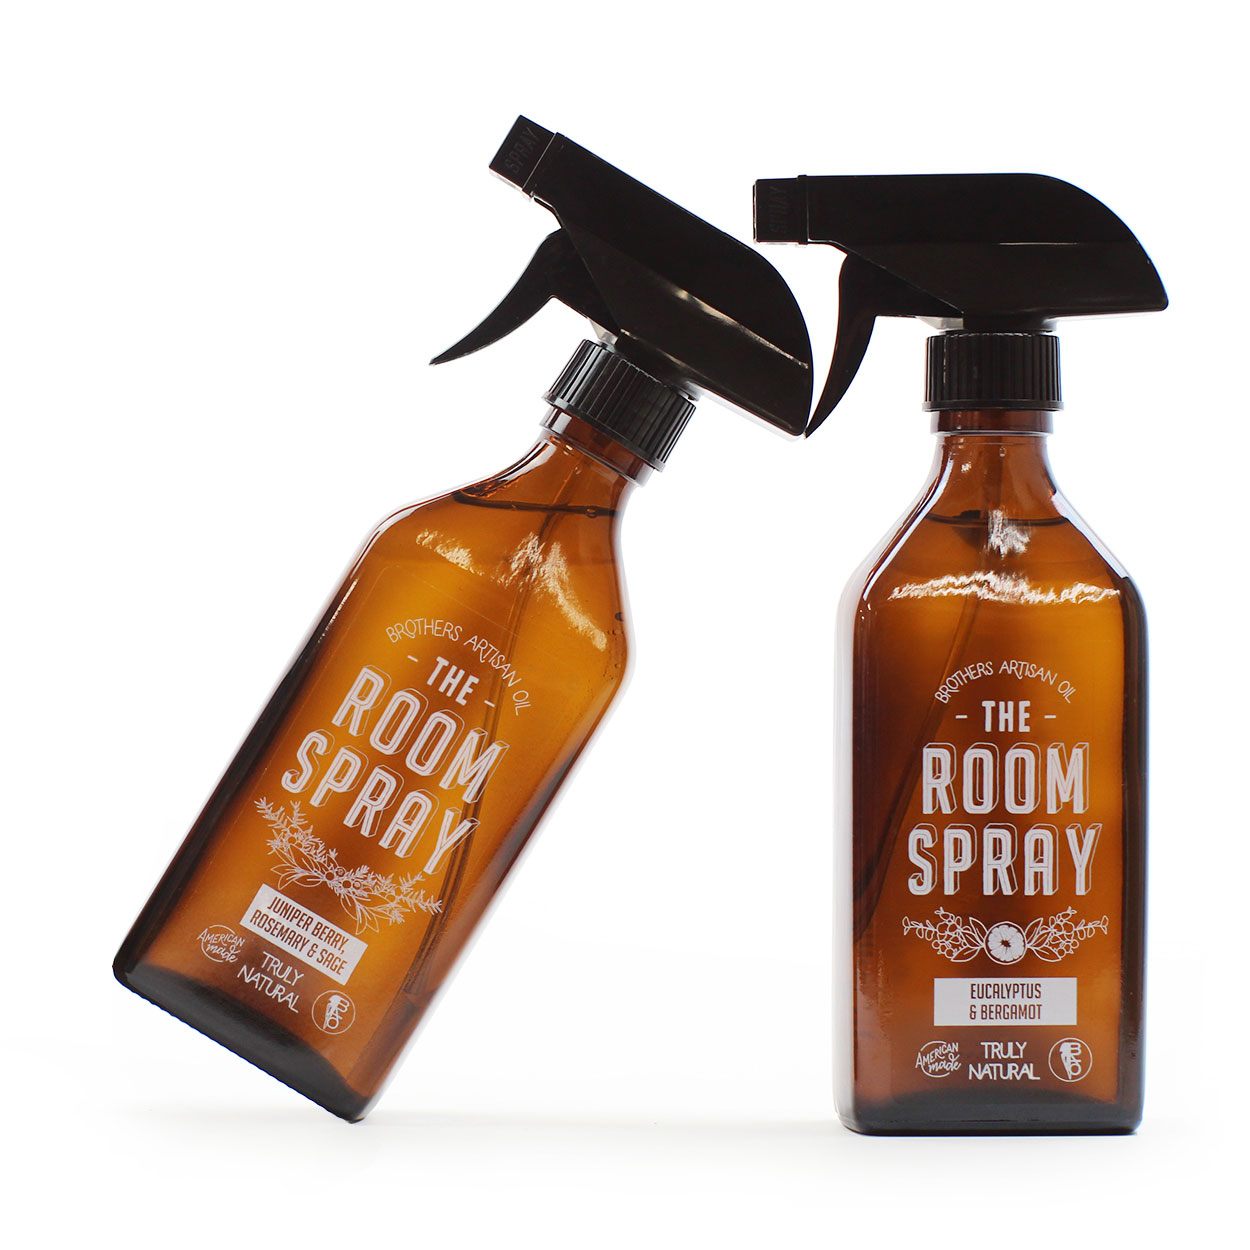 The Room Spray: Juniper Berry, Rosemary & Sage